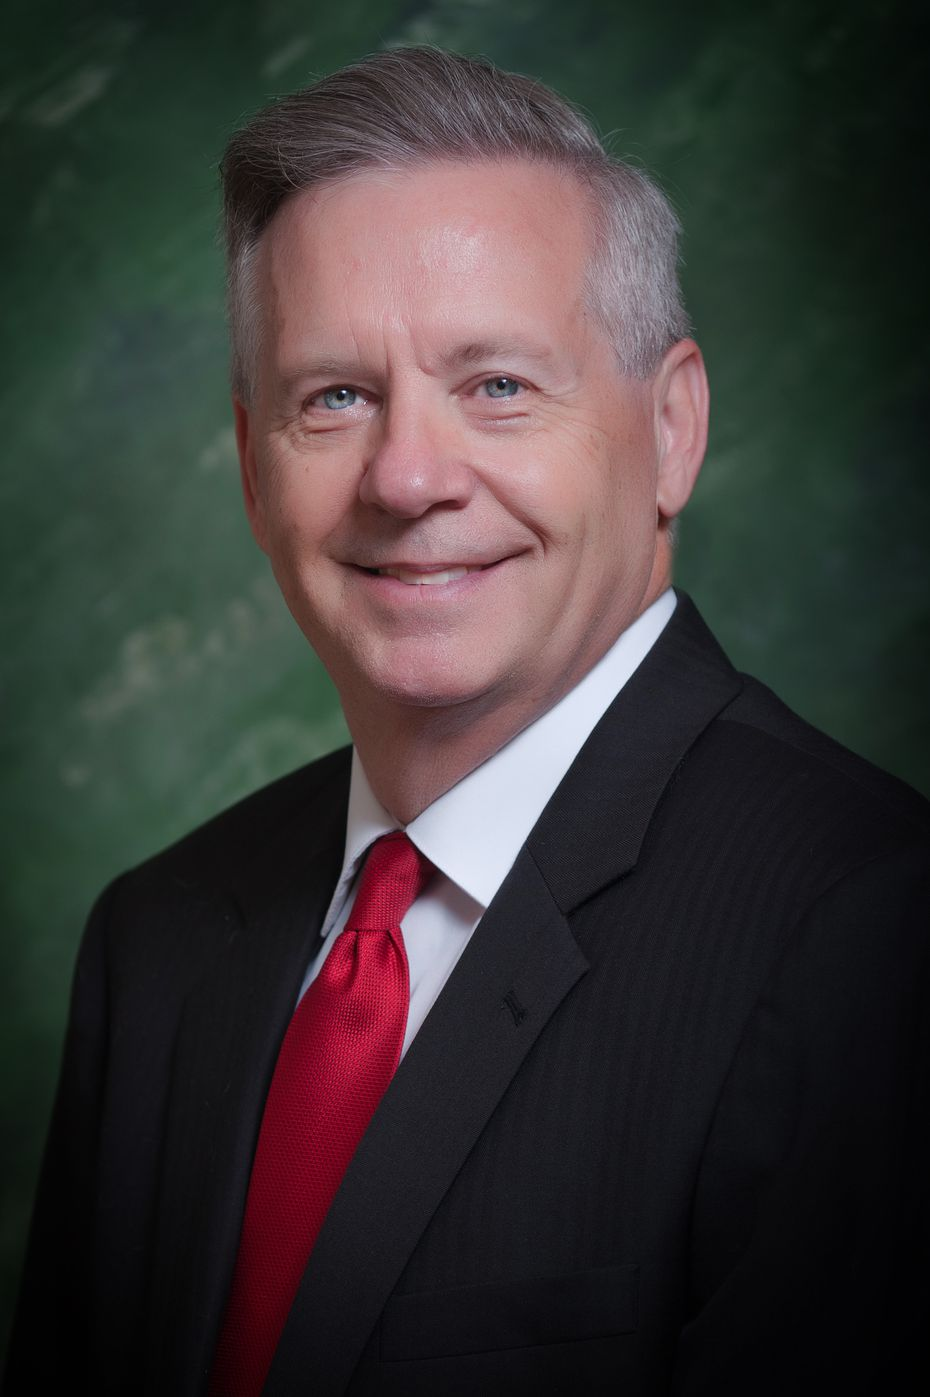 Jim Pikl, Republican candidate for the 5th Court of Appeals